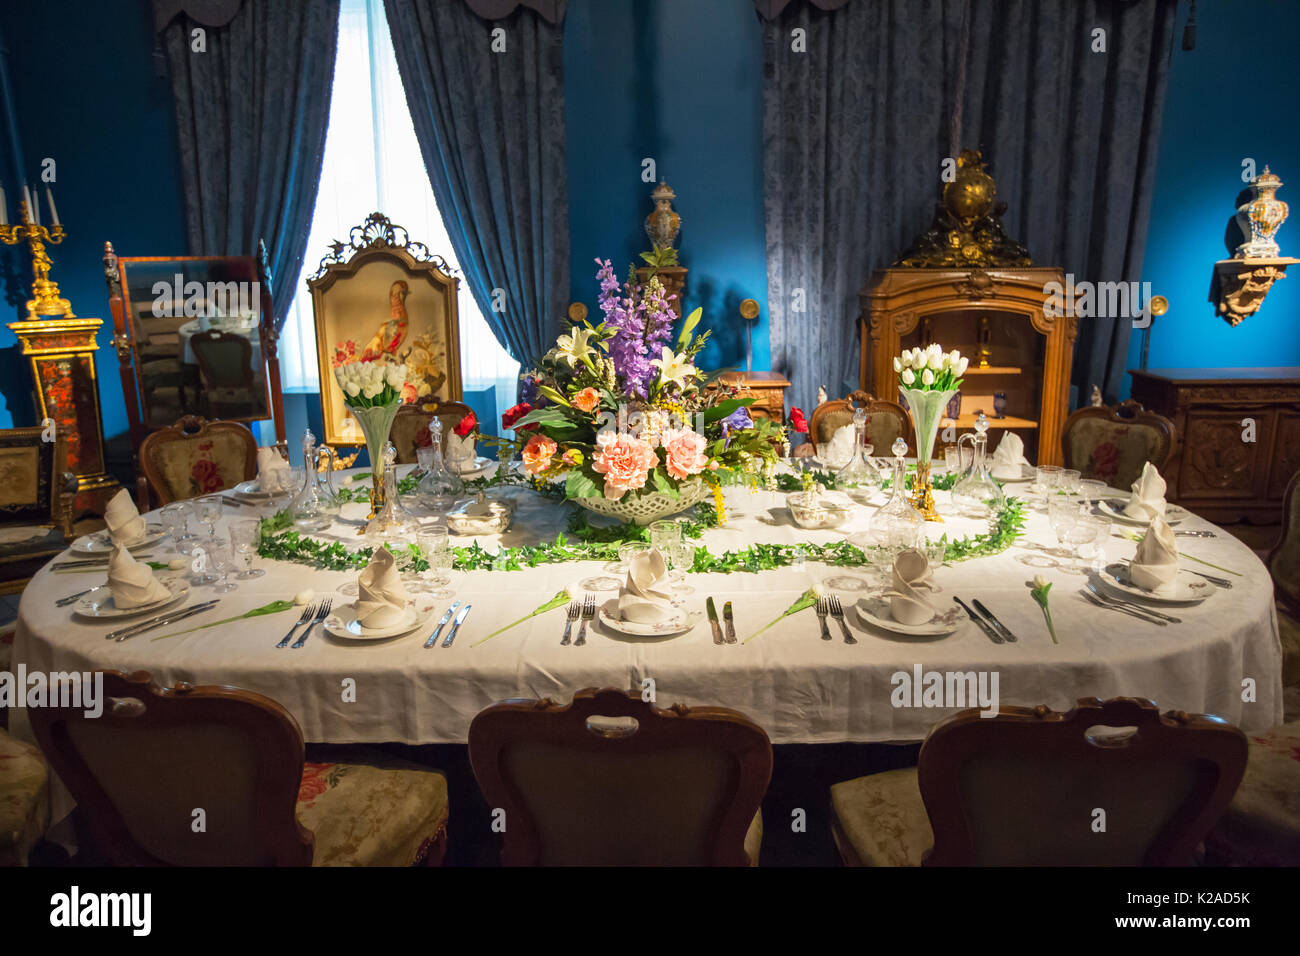 Victorian Dining Table Setting Stock Photos Amp Victorian